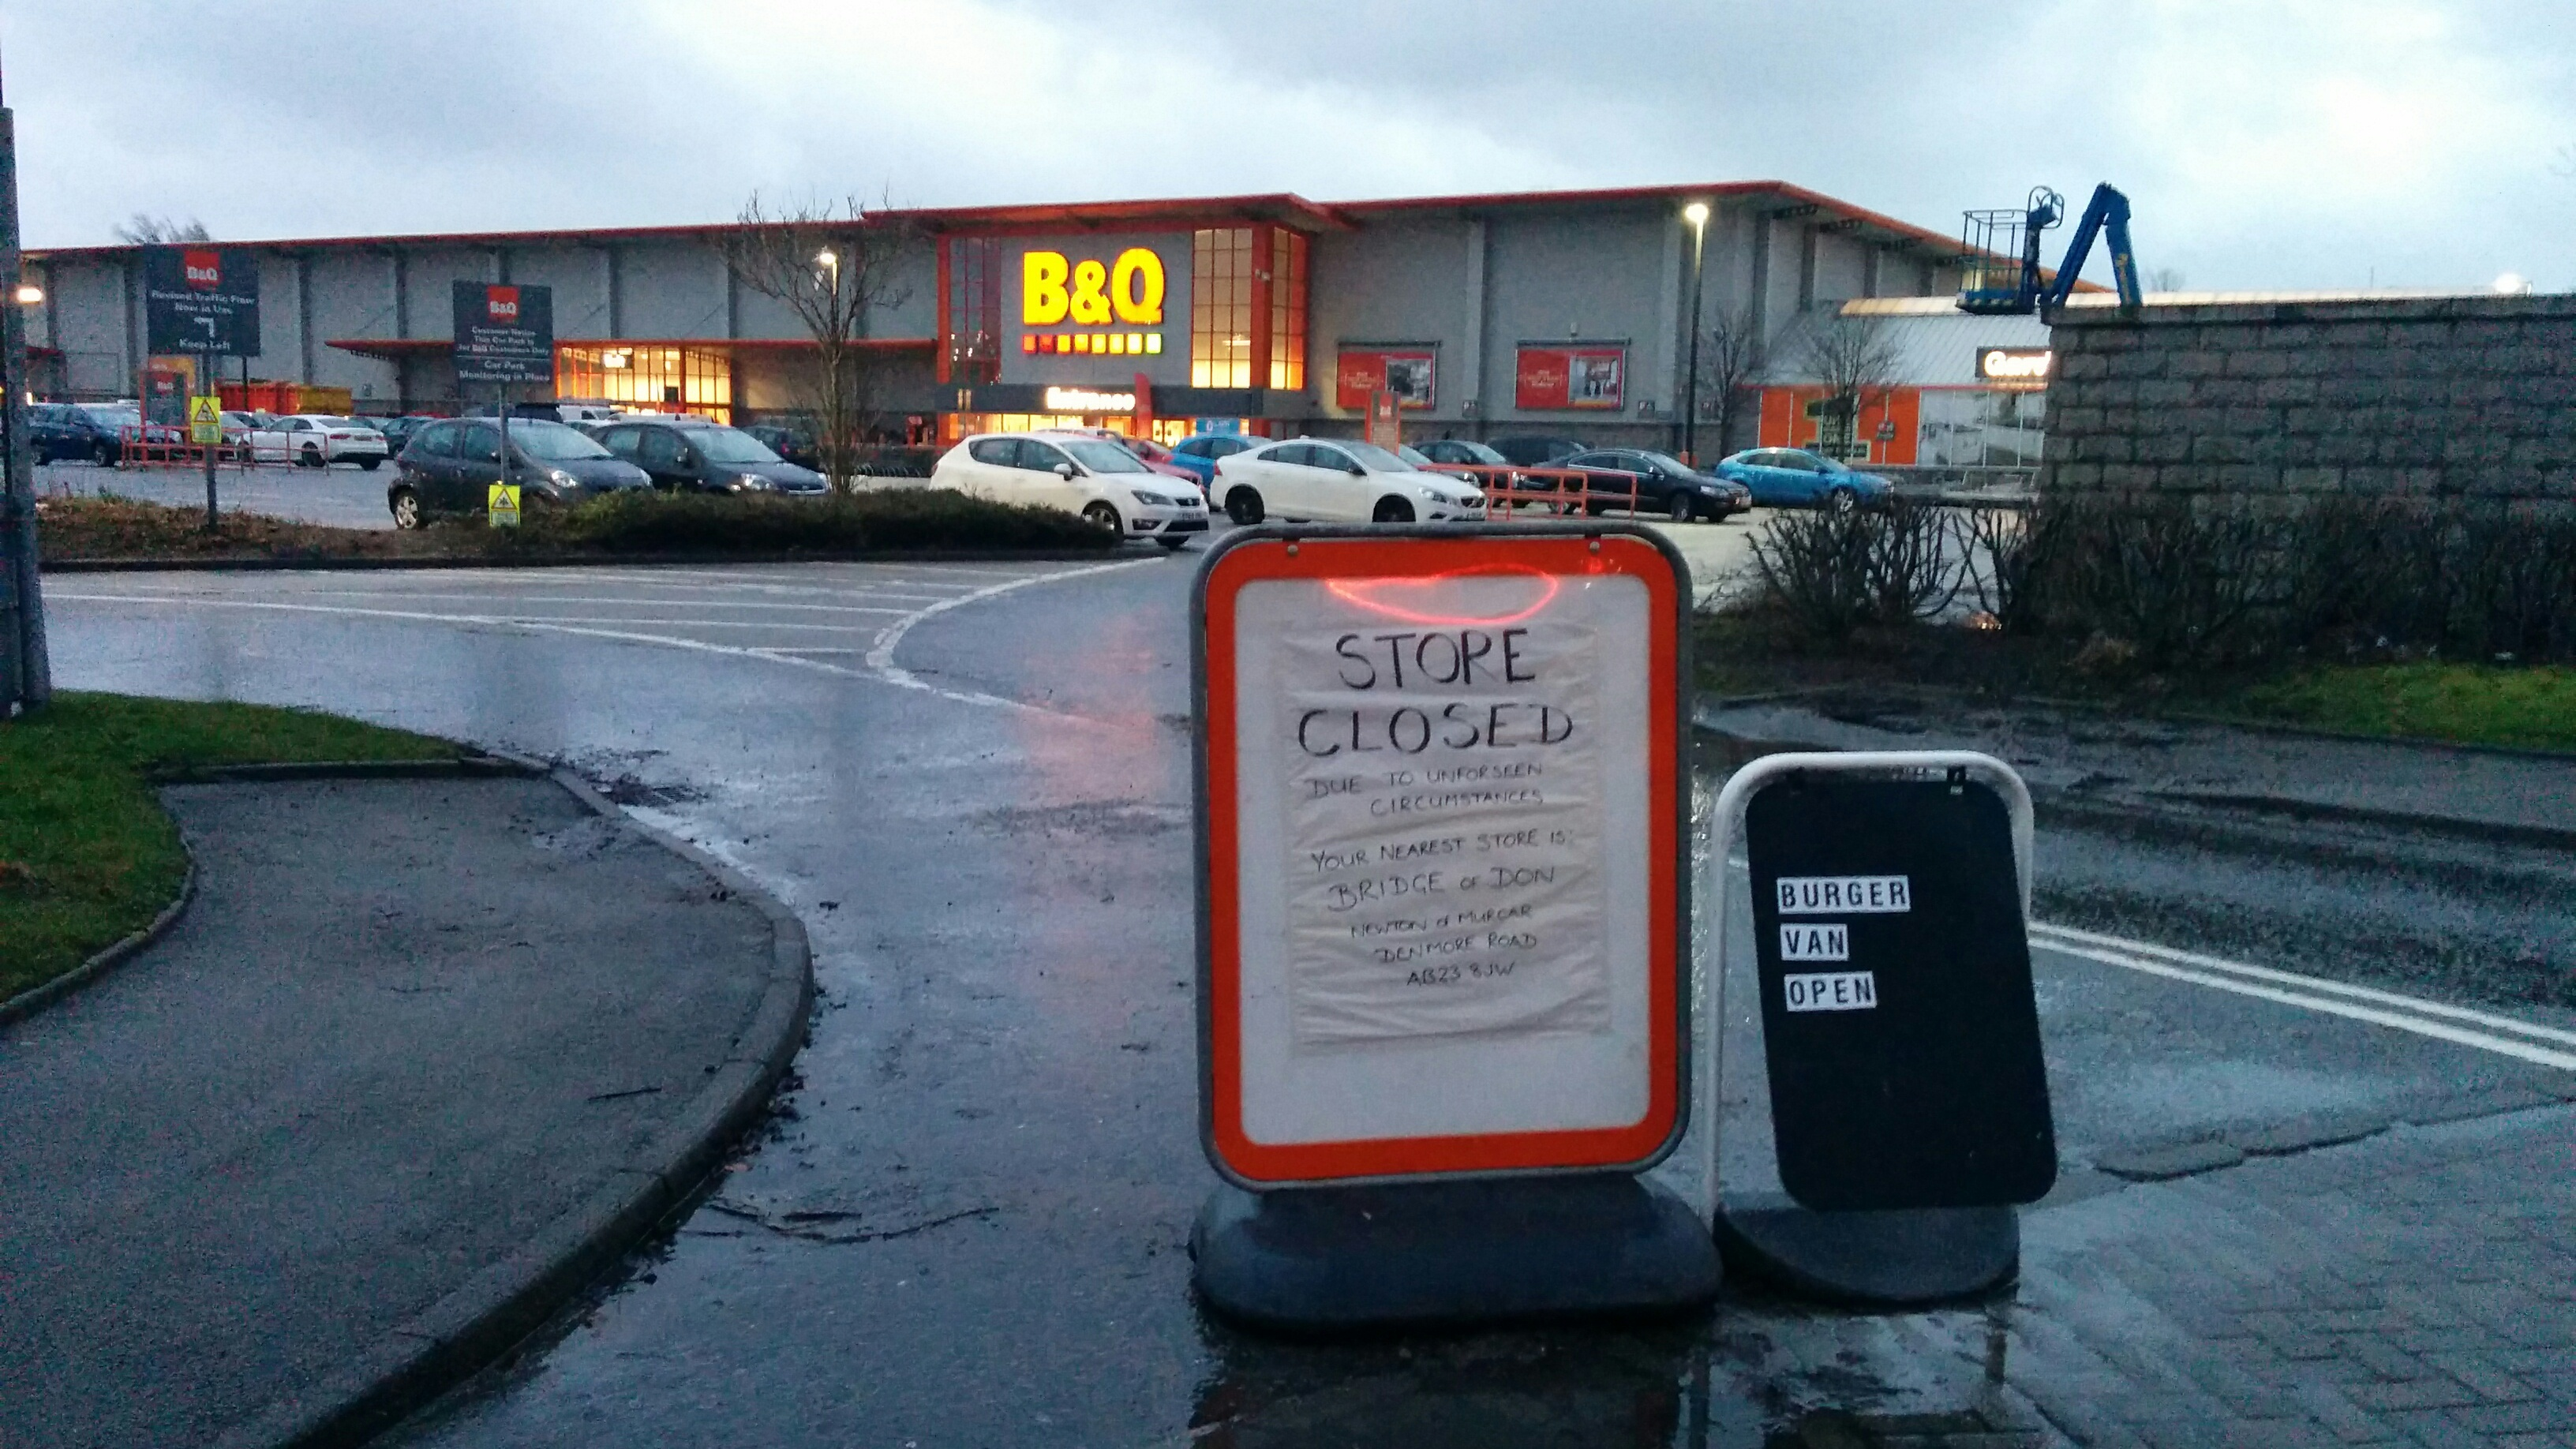 B&Q at Garthdee has been closed